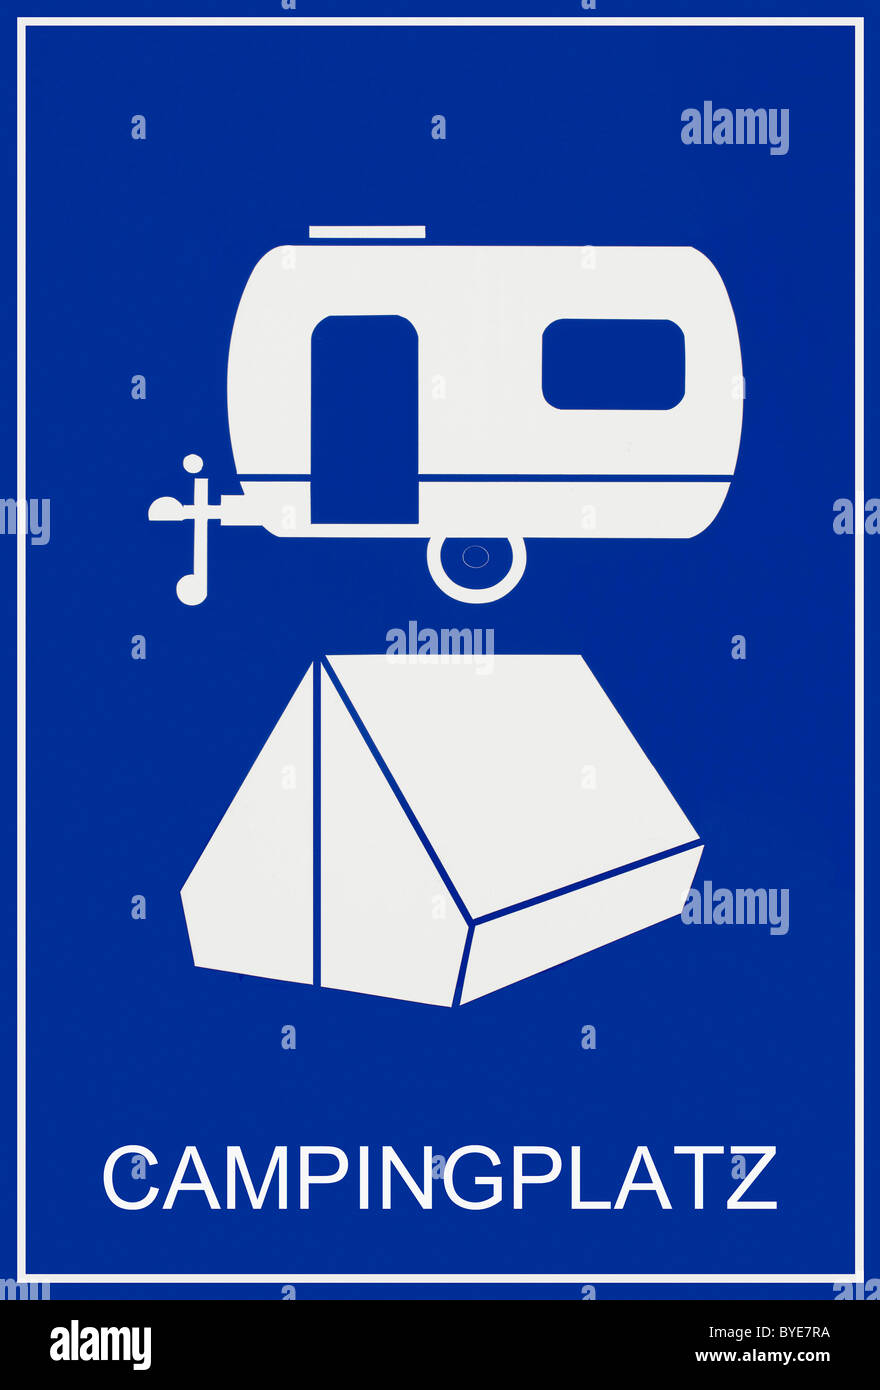 Blue sign, Campingplatz, German for campsite, with caravan and tent - Stock Image